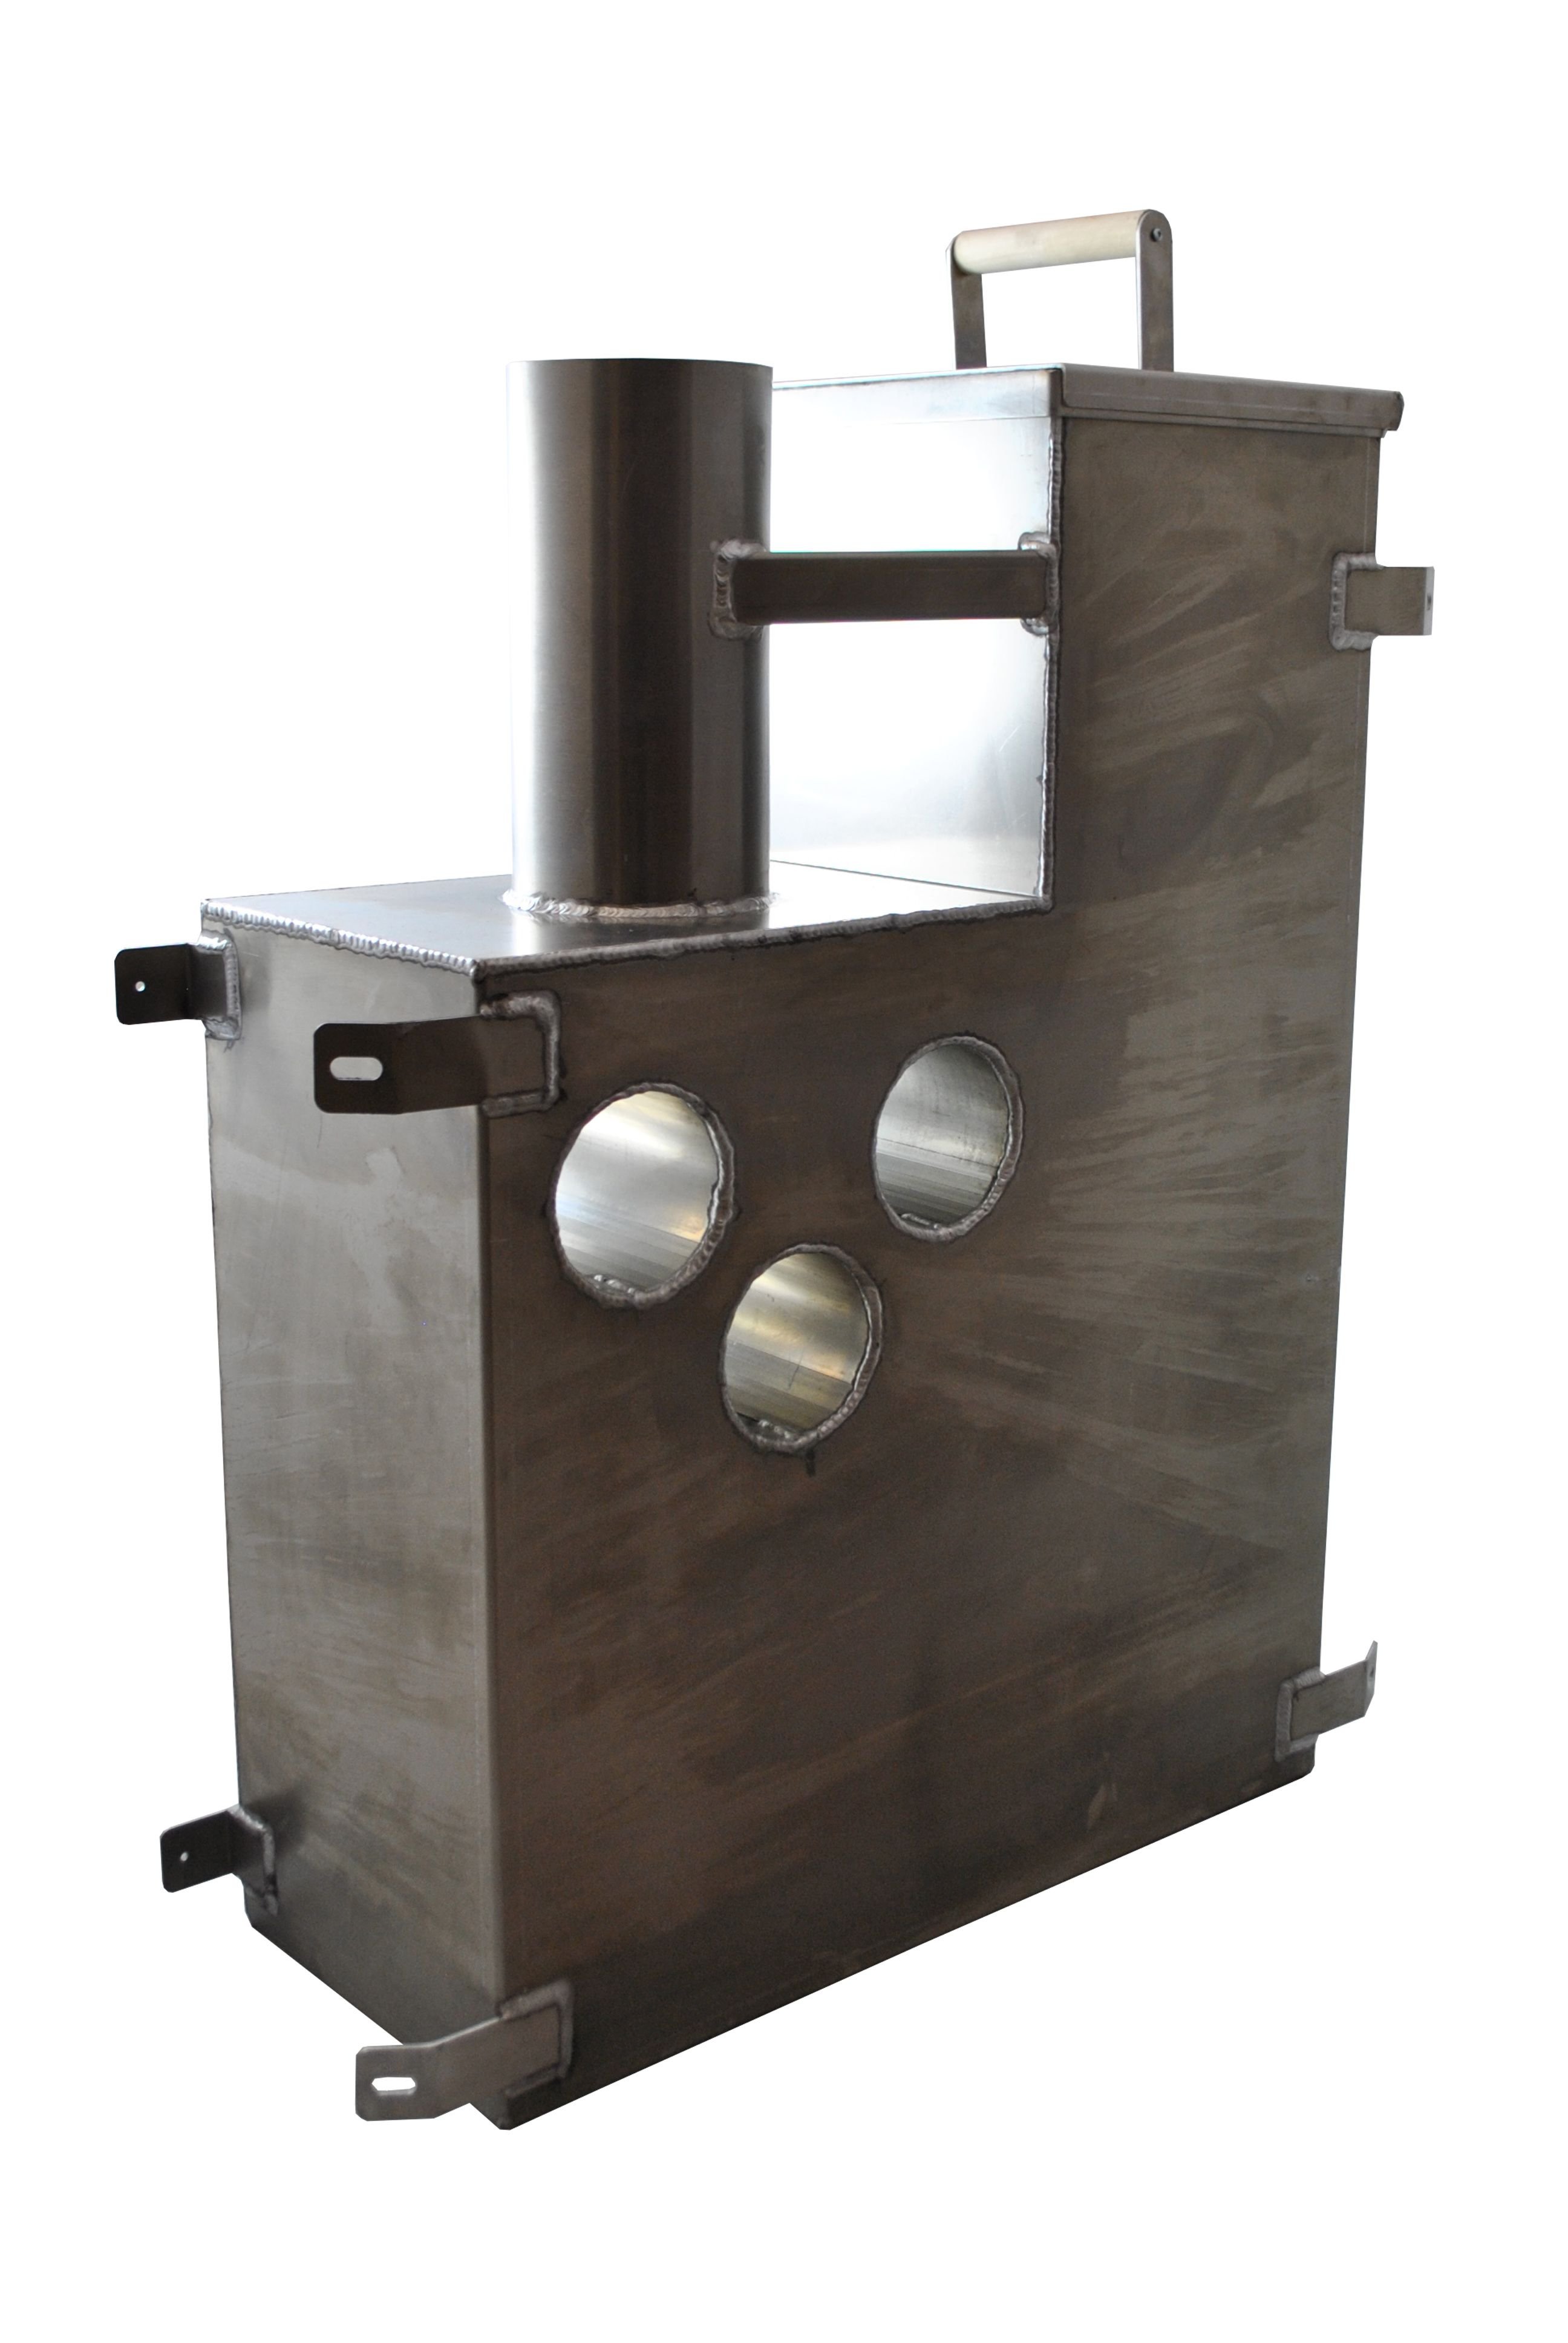 Wood Fired Hot Tub Heater | Hot Tub Parts | Pinterest | Hot tubs ...